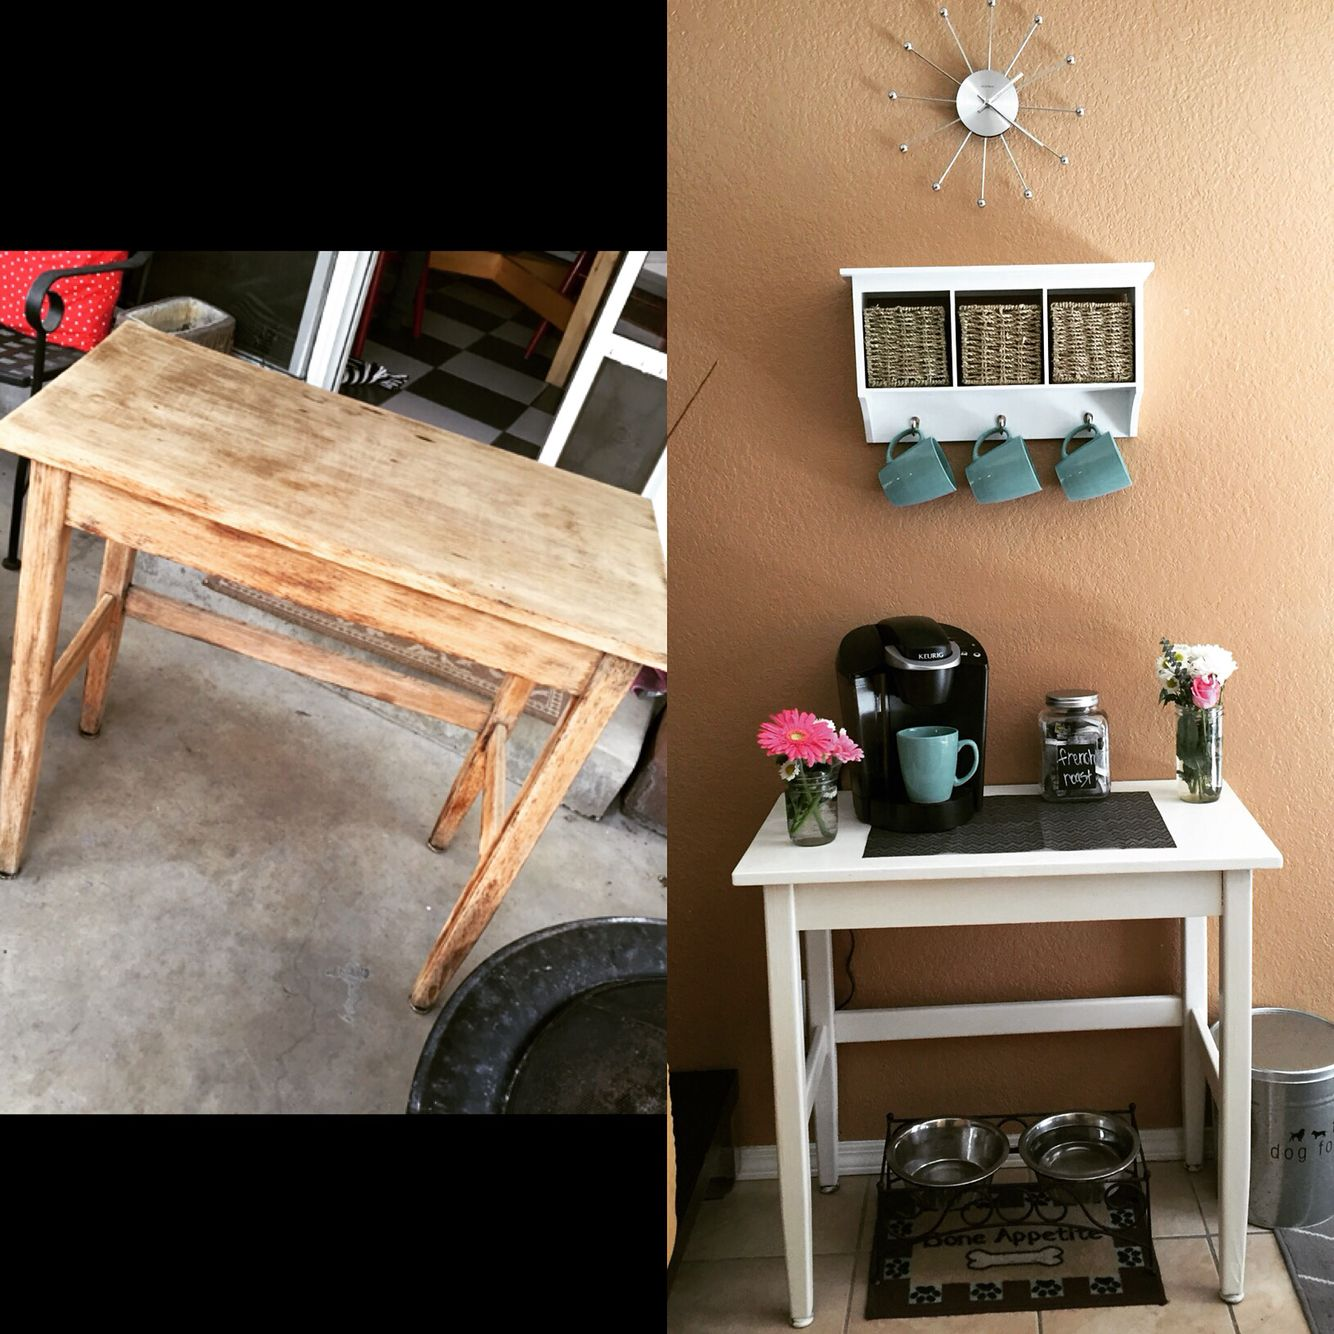 Old table repainted and turned into a coffee bar. Basket